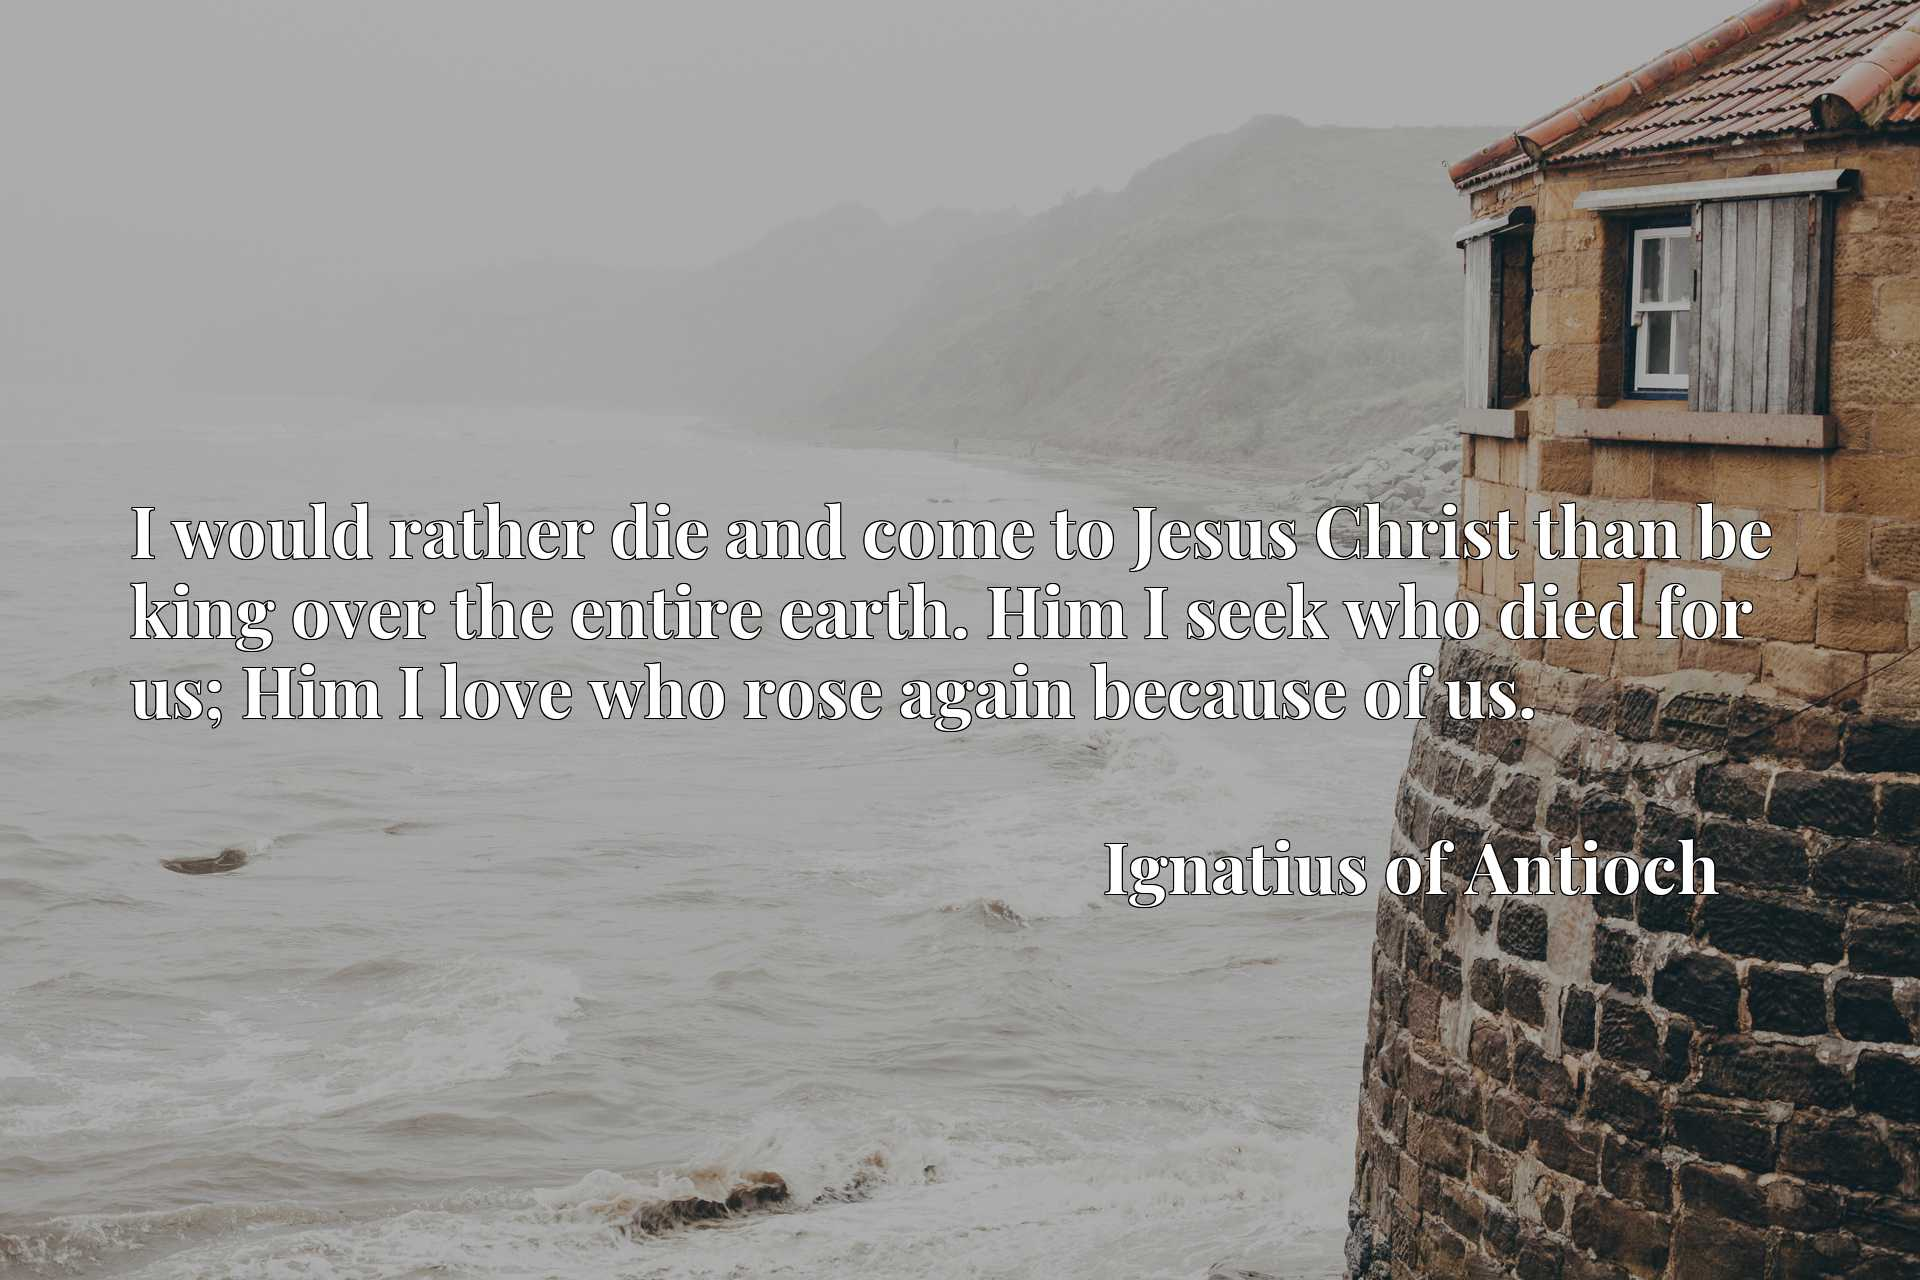 Quote Picture :I would rather die and come to Jesus Christ than be king over the entire earth. Him I seek who died for us; Him I love who rose again because of us.